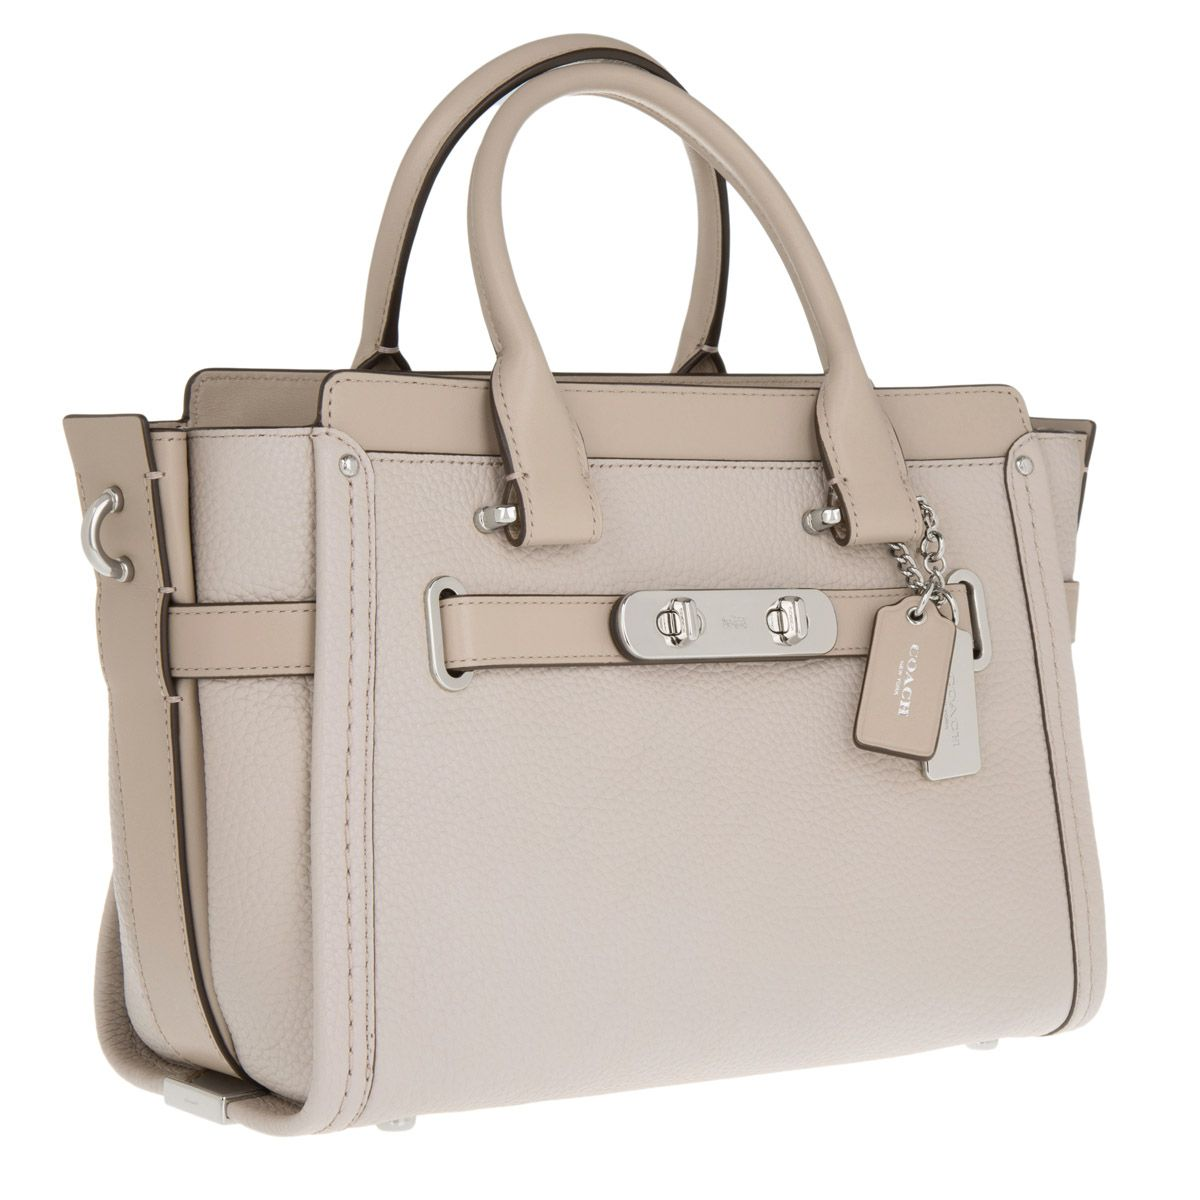 995310eaf2261 Coach Swagger 27 Carryall Pebbled Cowhide Grey Birch bei Fashionette ...